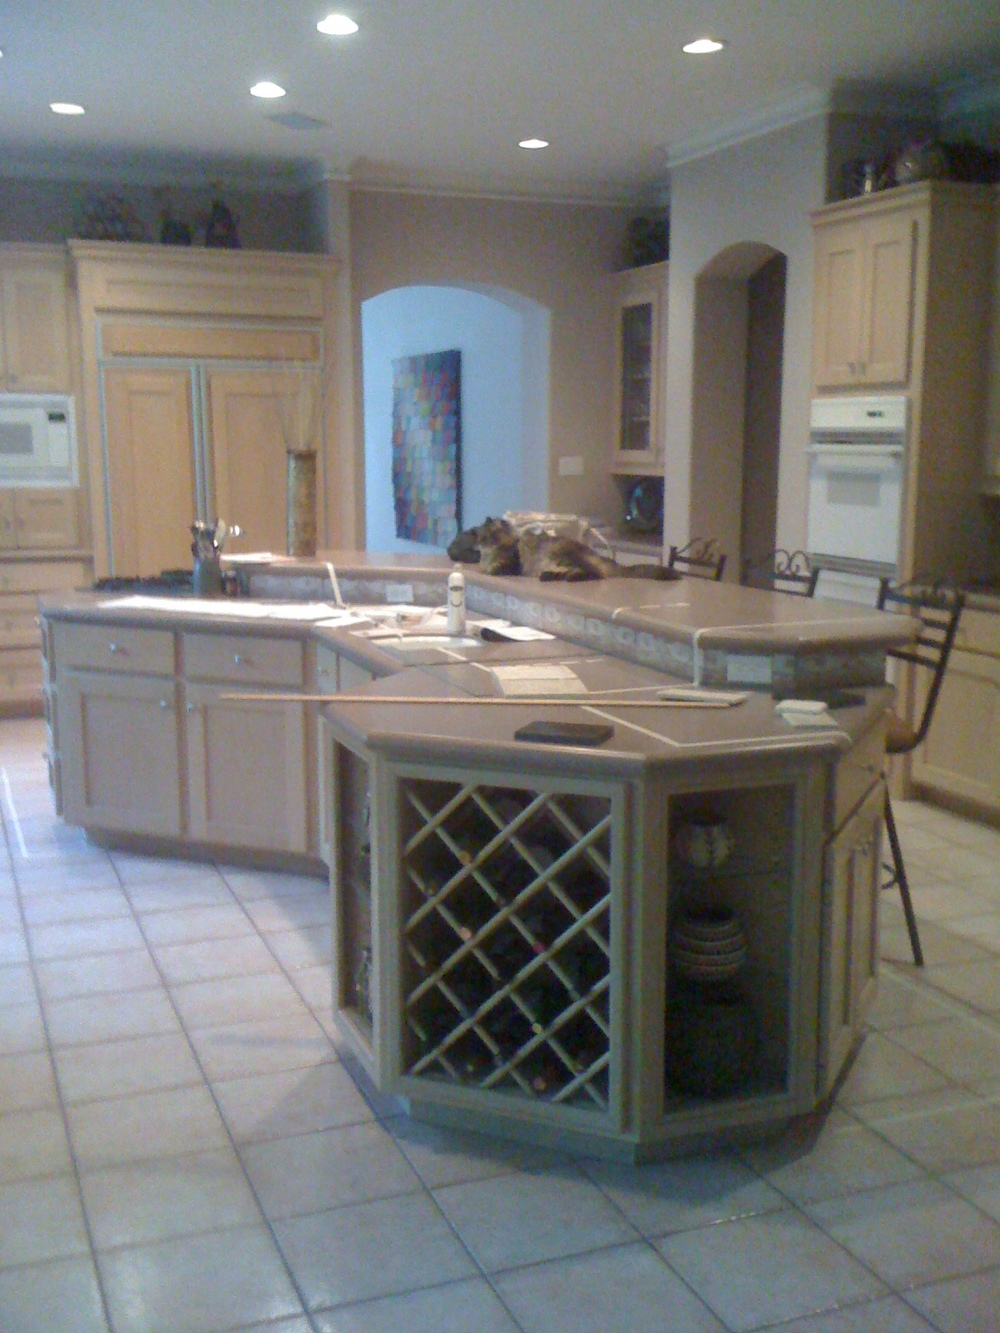 Odd Shaped Kitchens 218 194 t shape kitchen island home design photos. download image